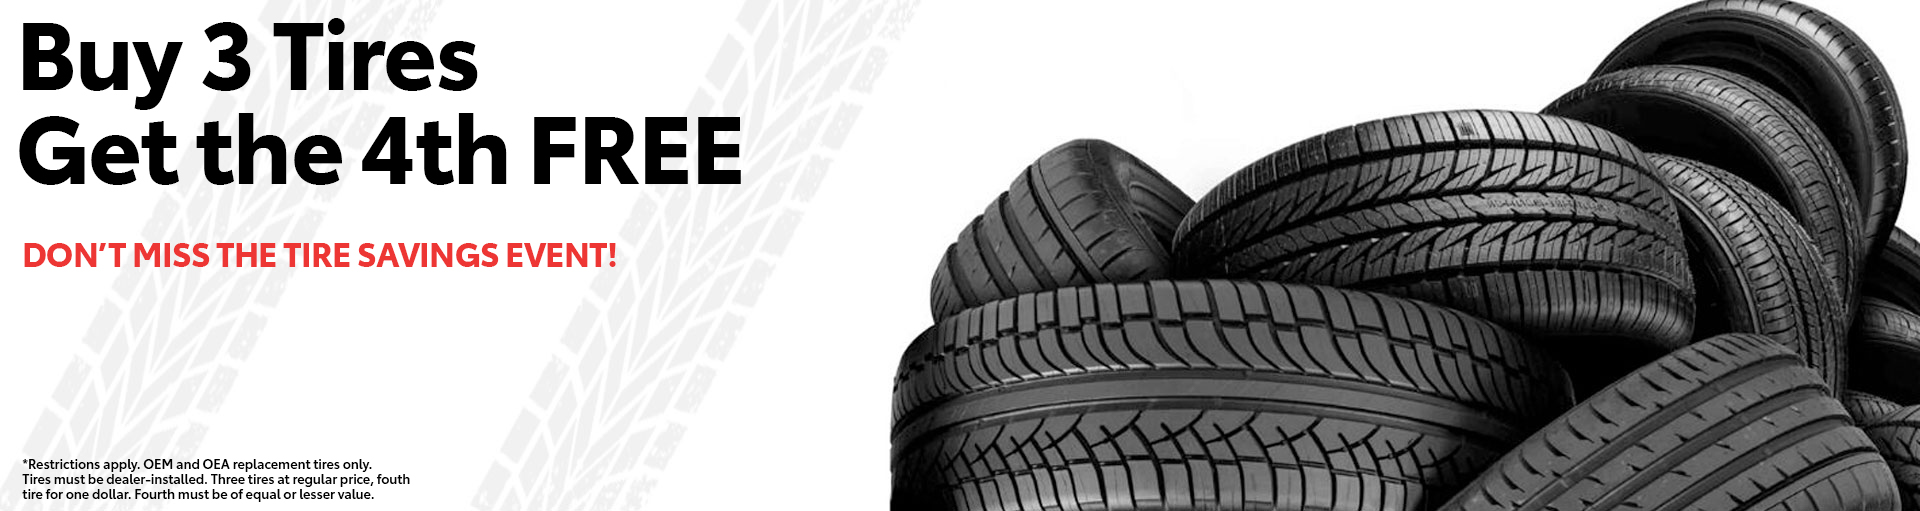 Toyota Buy 3 Tires Special